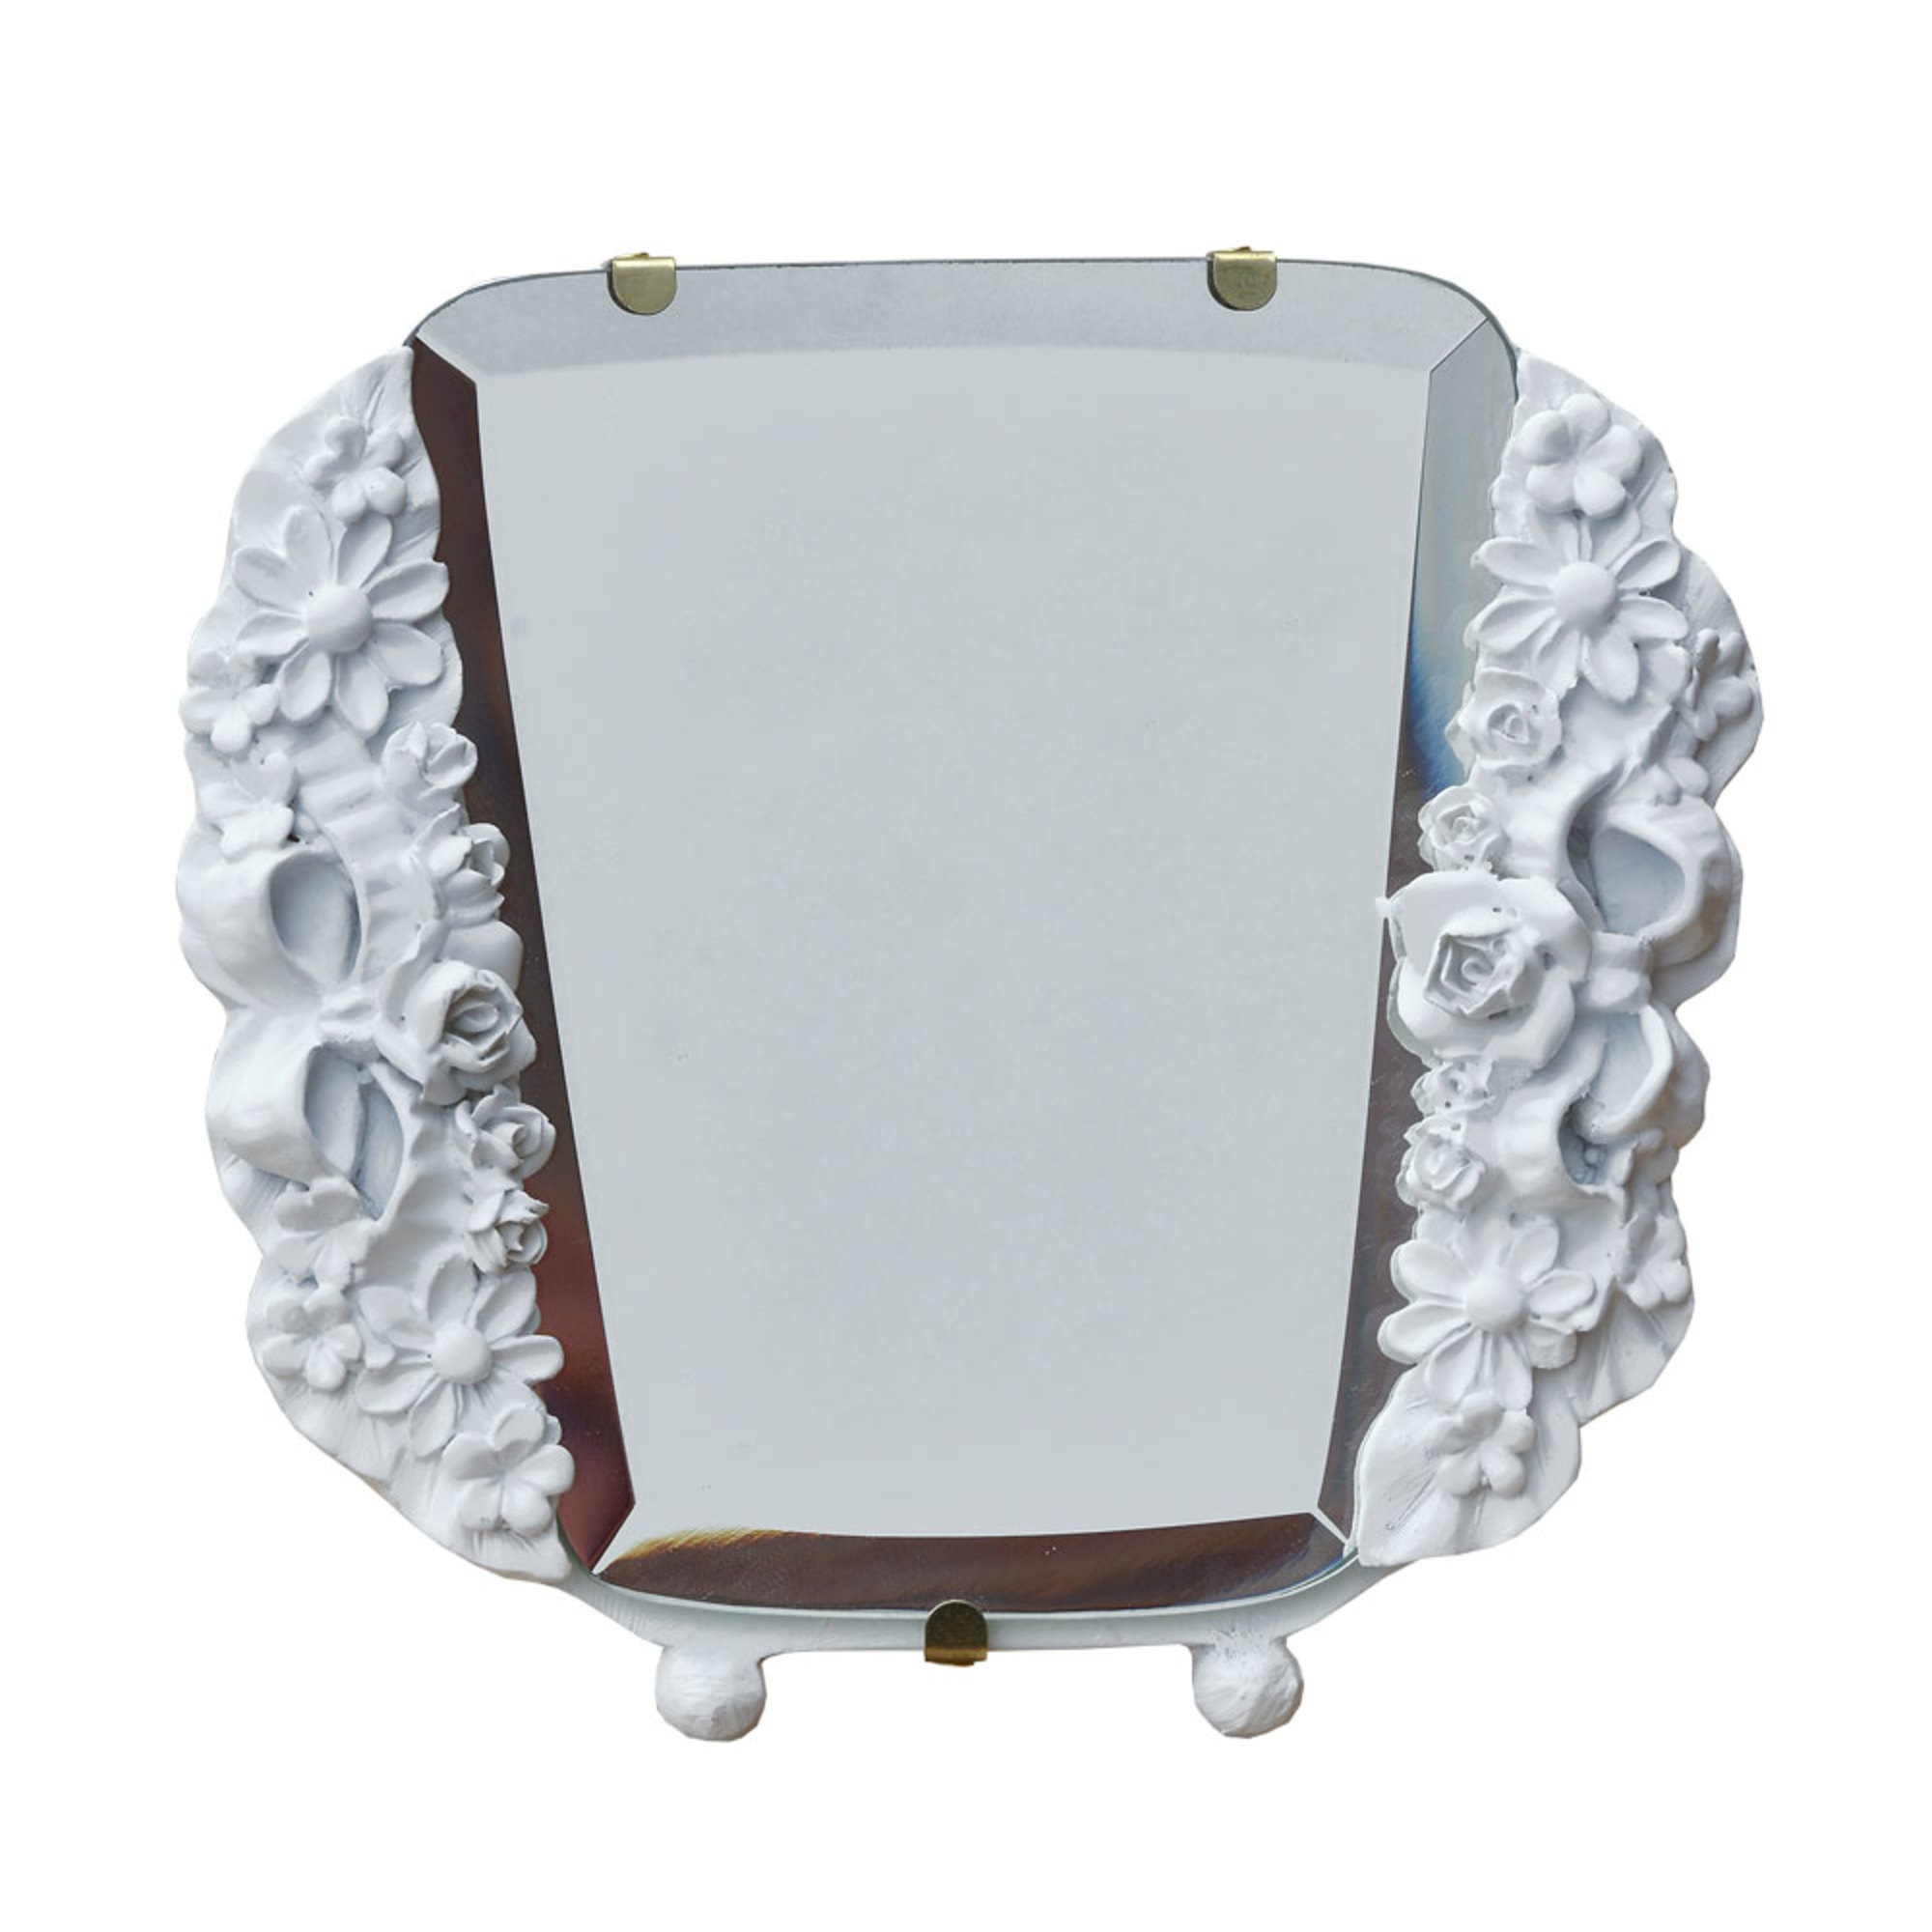 Barbola Floral White Clay Paint Decorative Table or Wall Bedroom Mirror